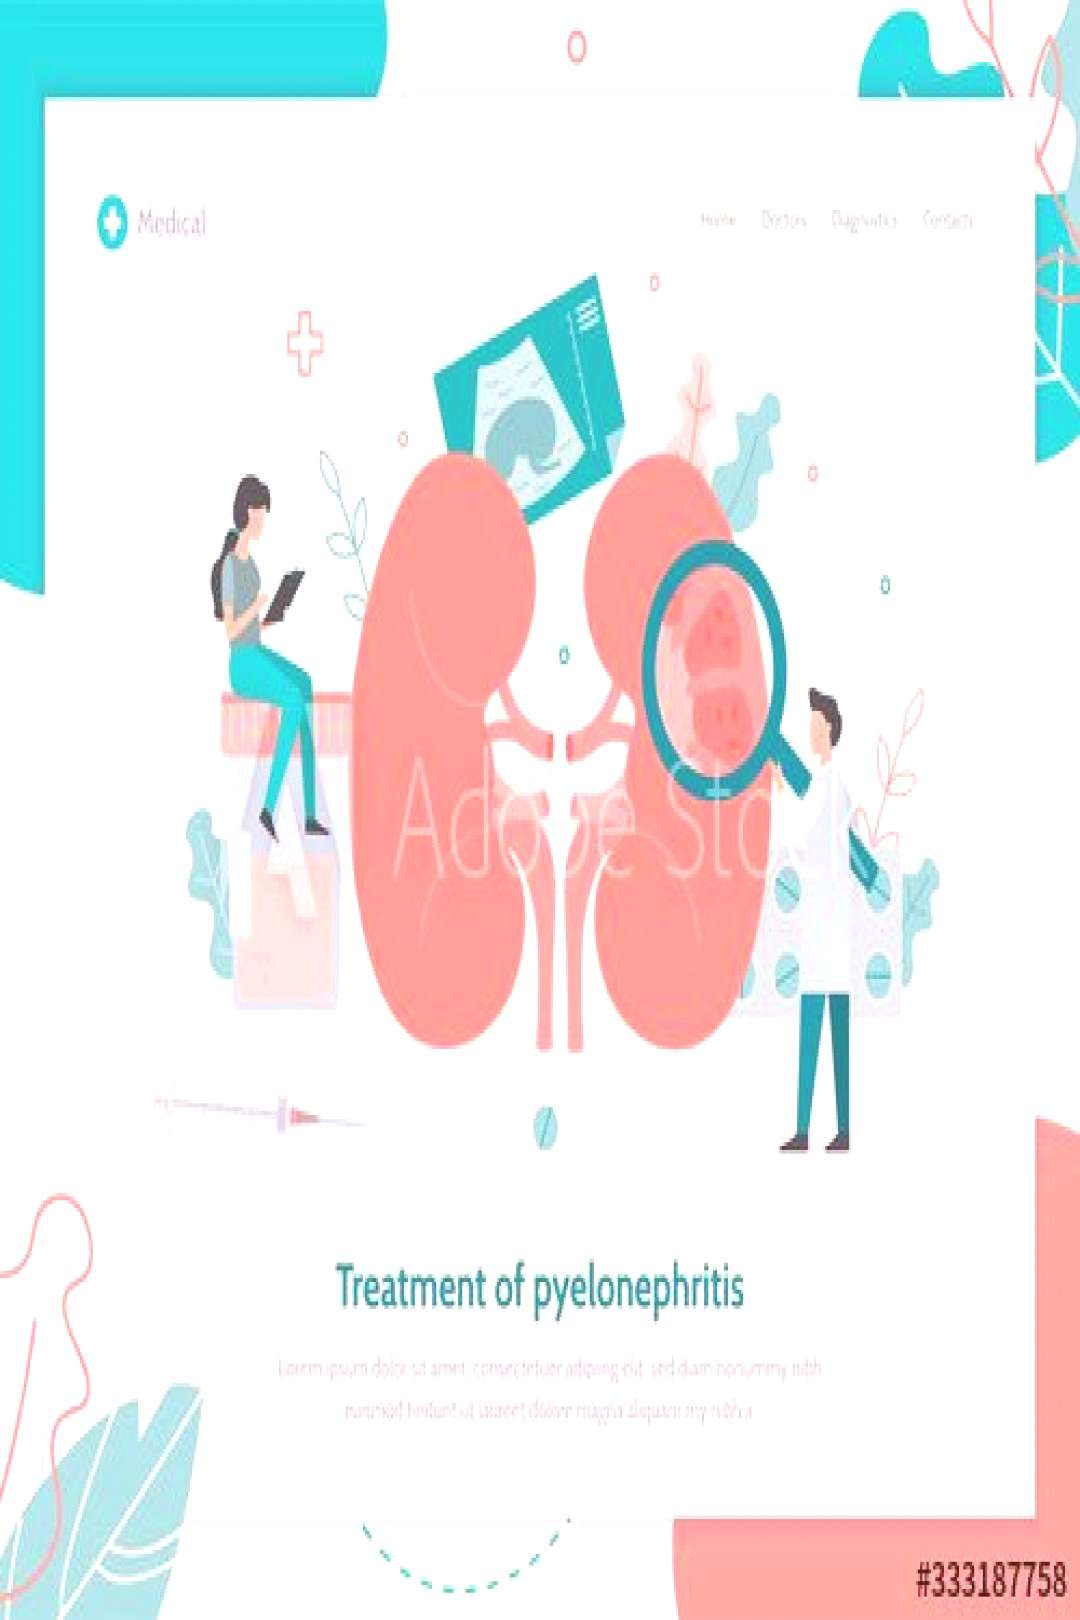 Pyelonephritis kidney treatment. Doctors conduct medical research for kidney inflammation. Landing